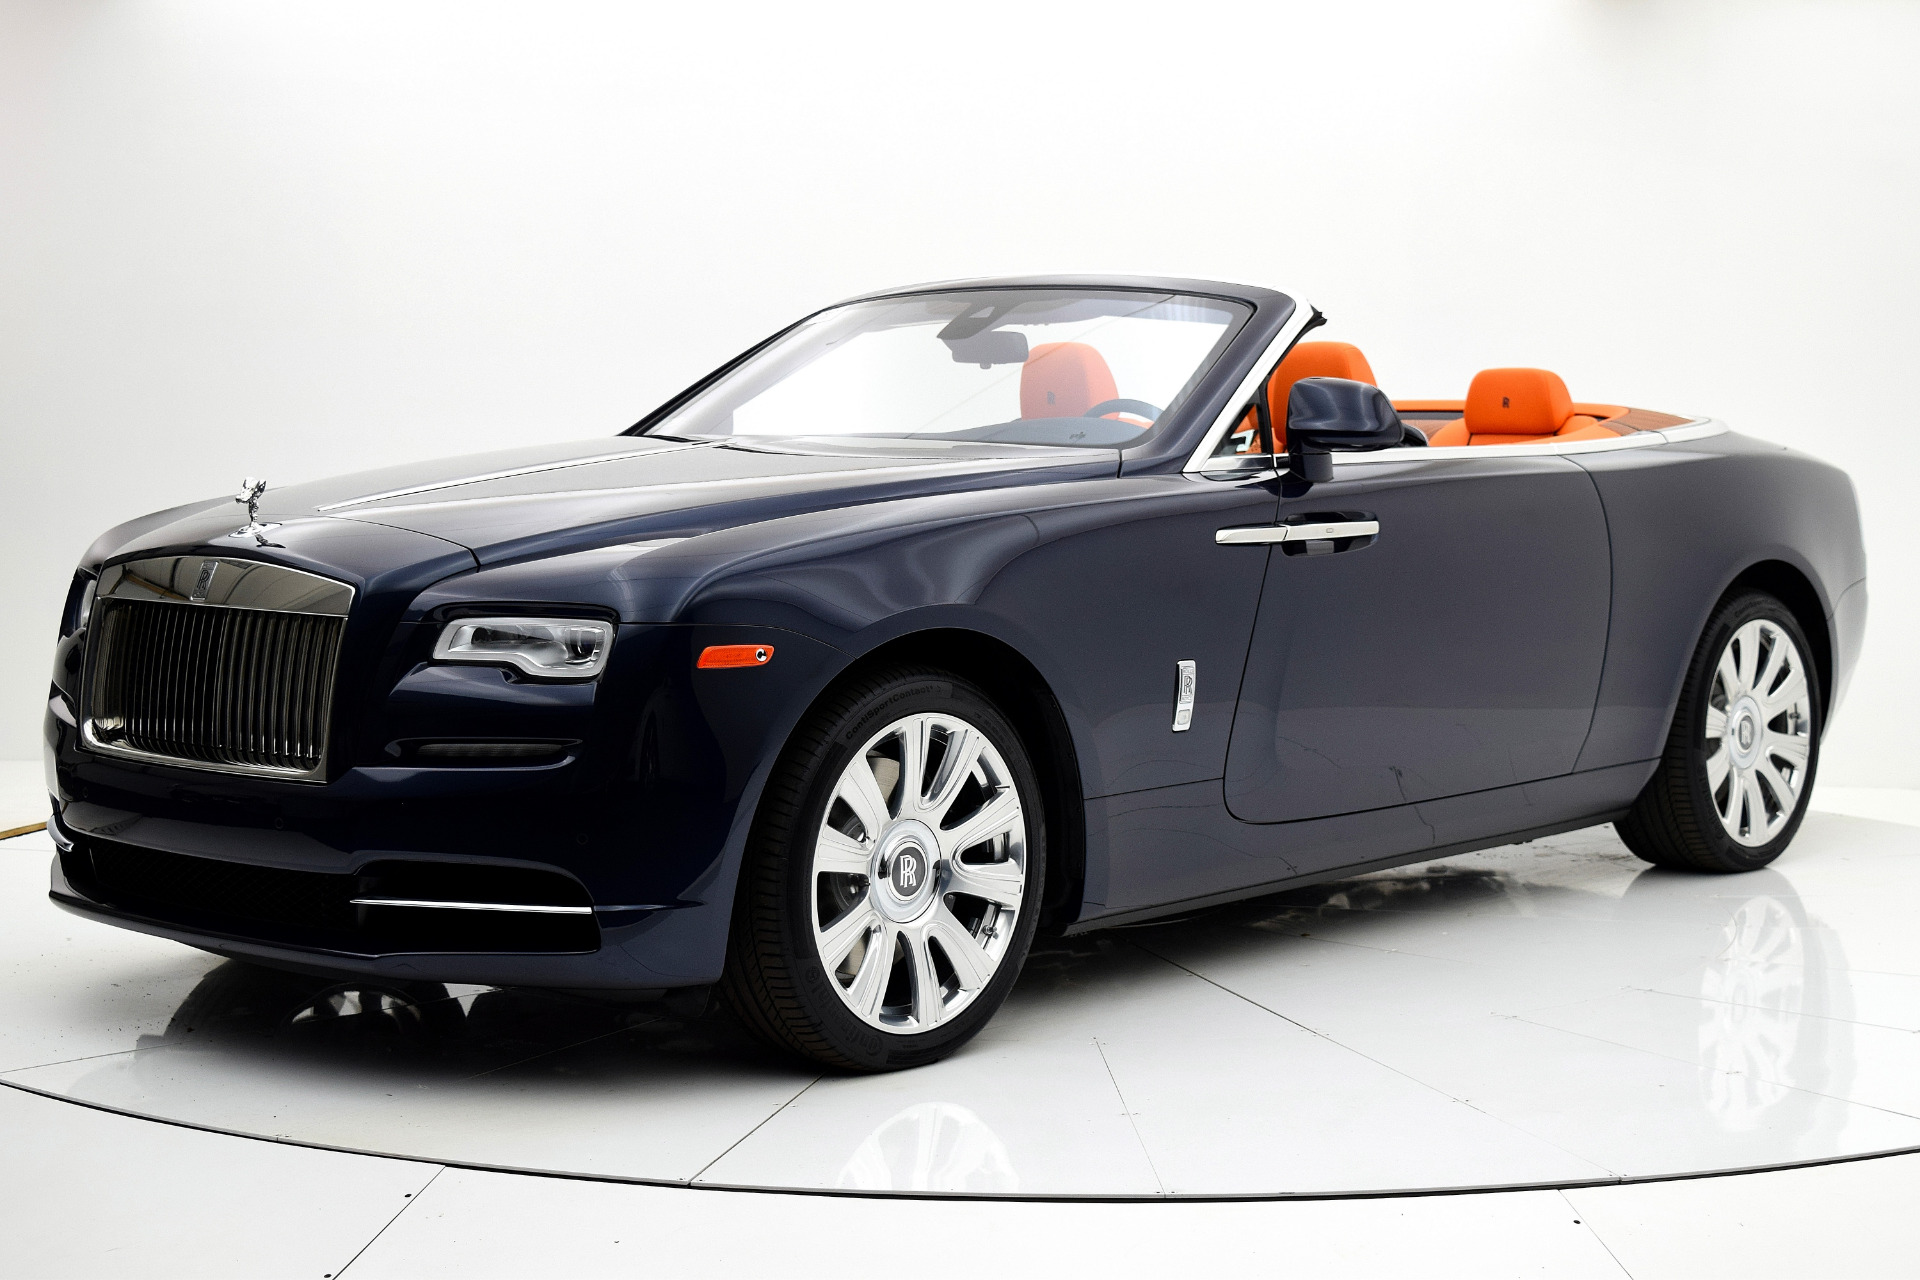 Used 2016 Rolls-Royce Dawn for sale Sold at F.C. Kerbeck Aston Martin in Palmyra NJ 08065 2